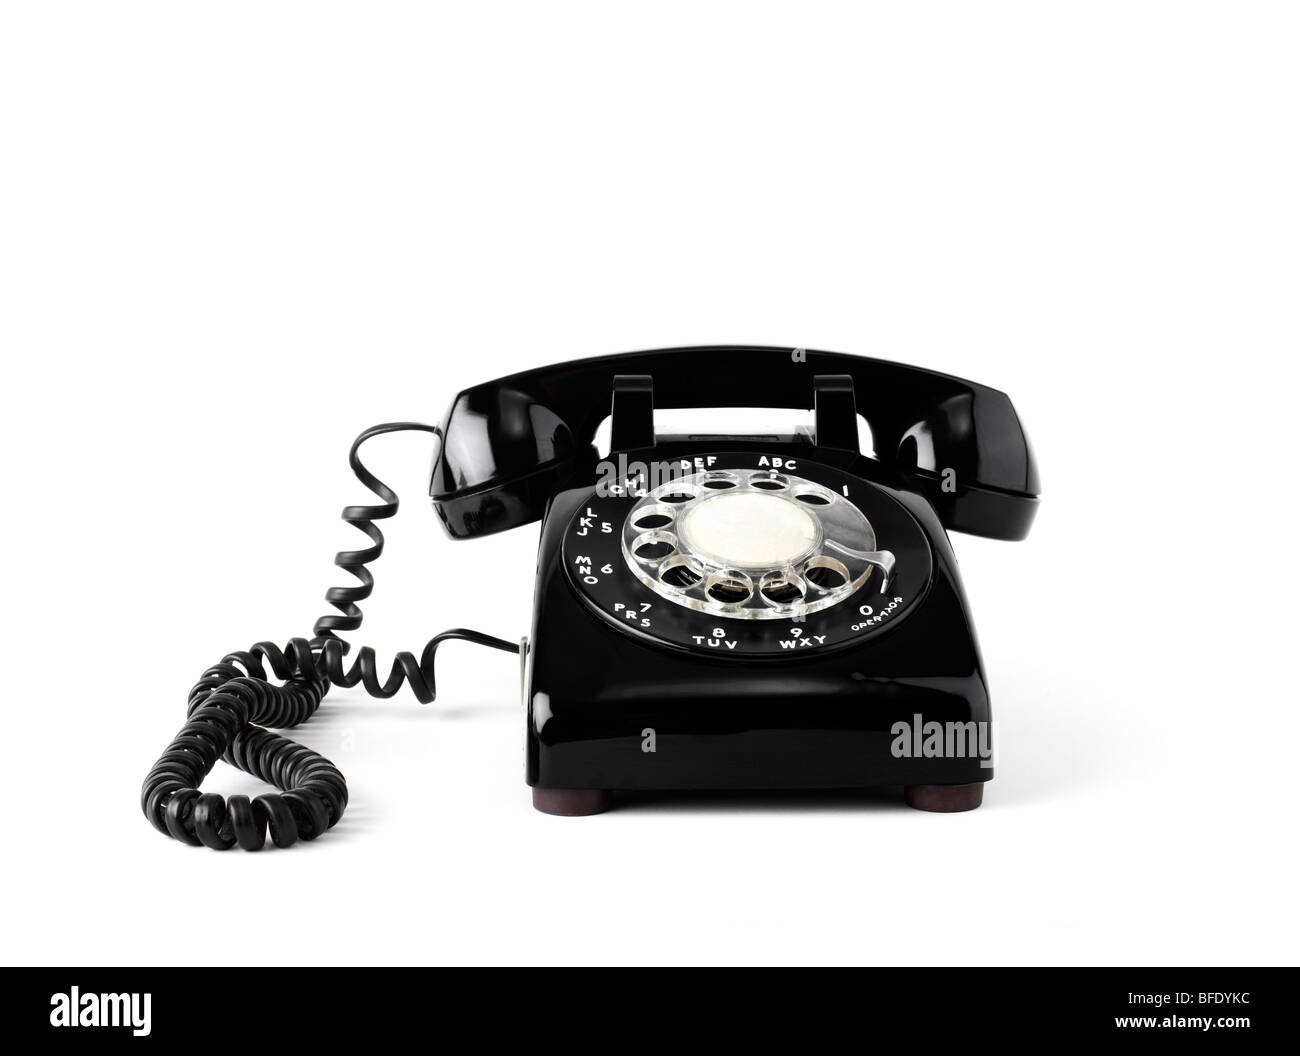 Old fashion rotary telephone - Stock Image